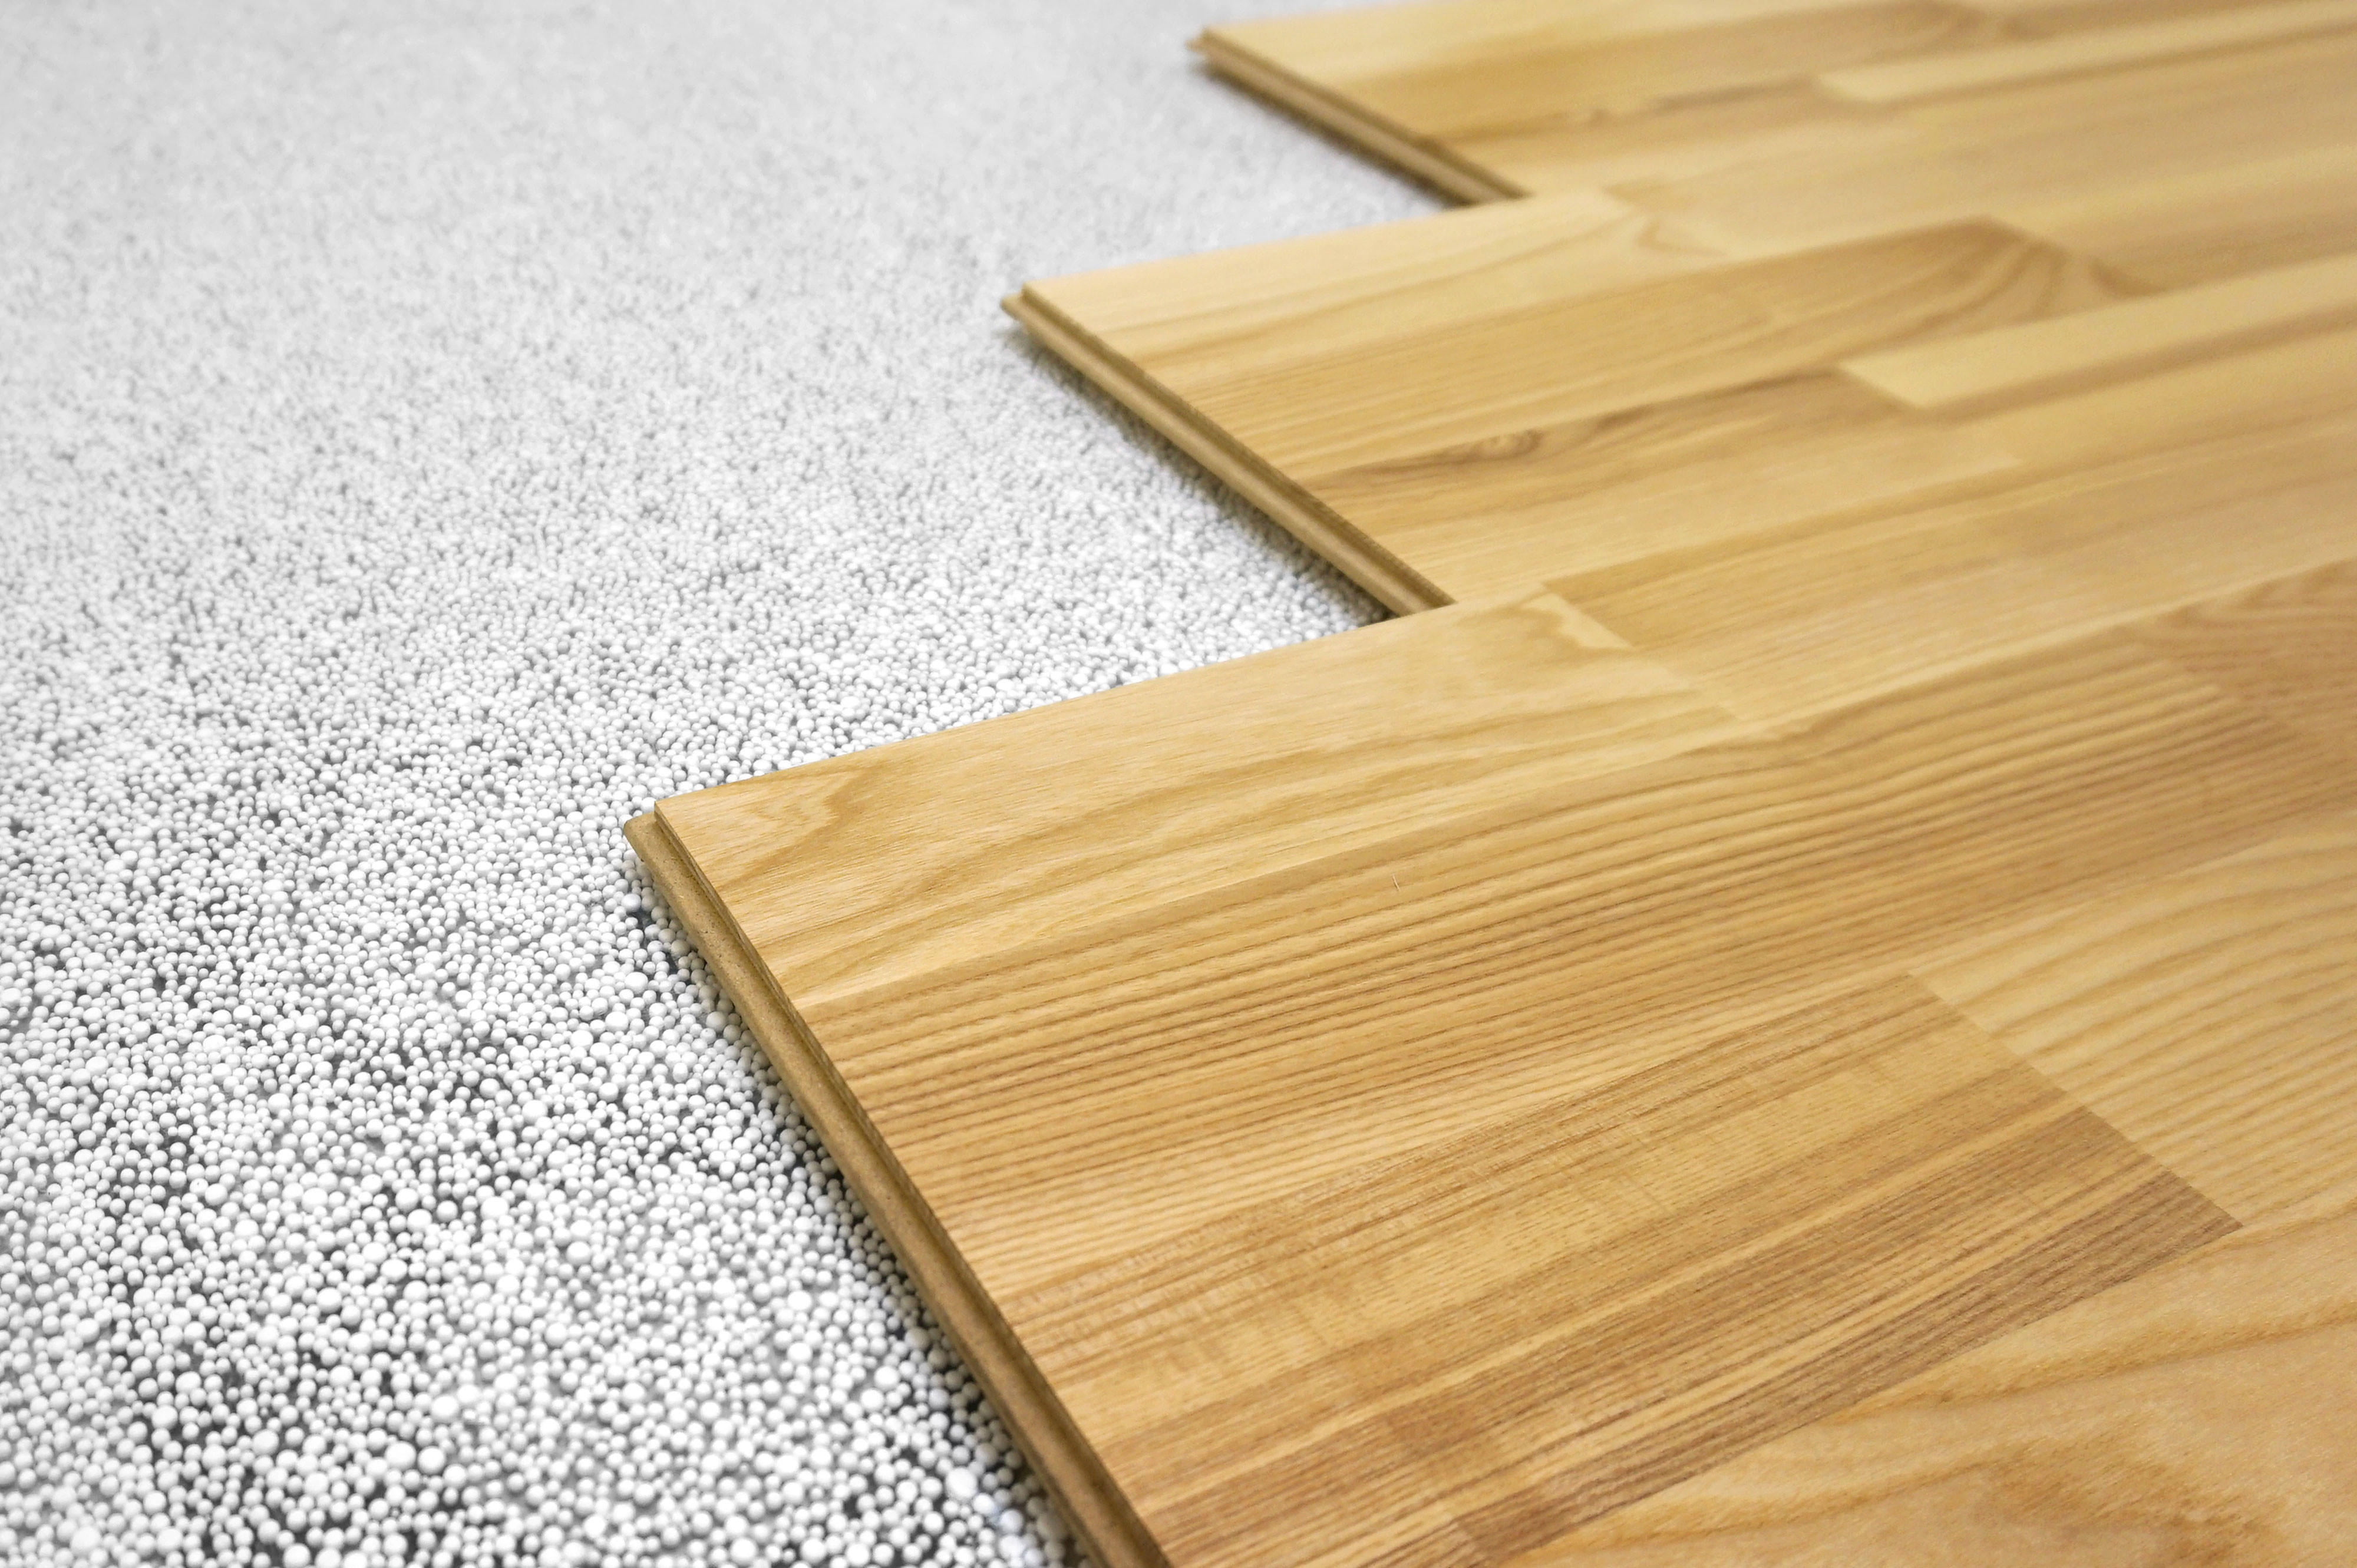 3 4 hardwood flooring for sale of what does it cost to install laminate flooring angies list throughout wood lam